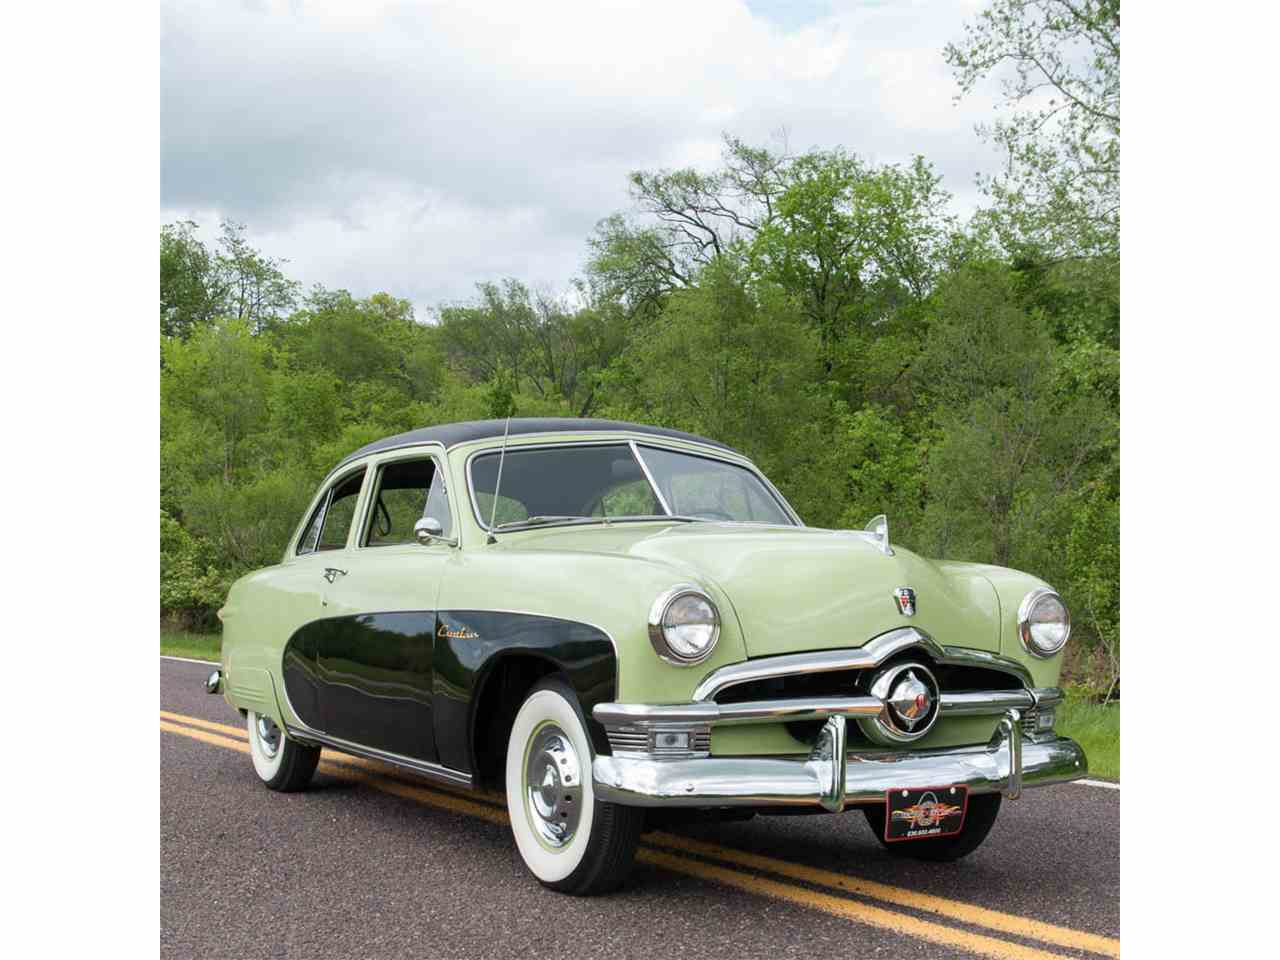 Large Picture of '50 Crestliner Tudor Sedan located in Missouri - $27,900.00 Offered by MotoeXotica Classic Cars - HO6T